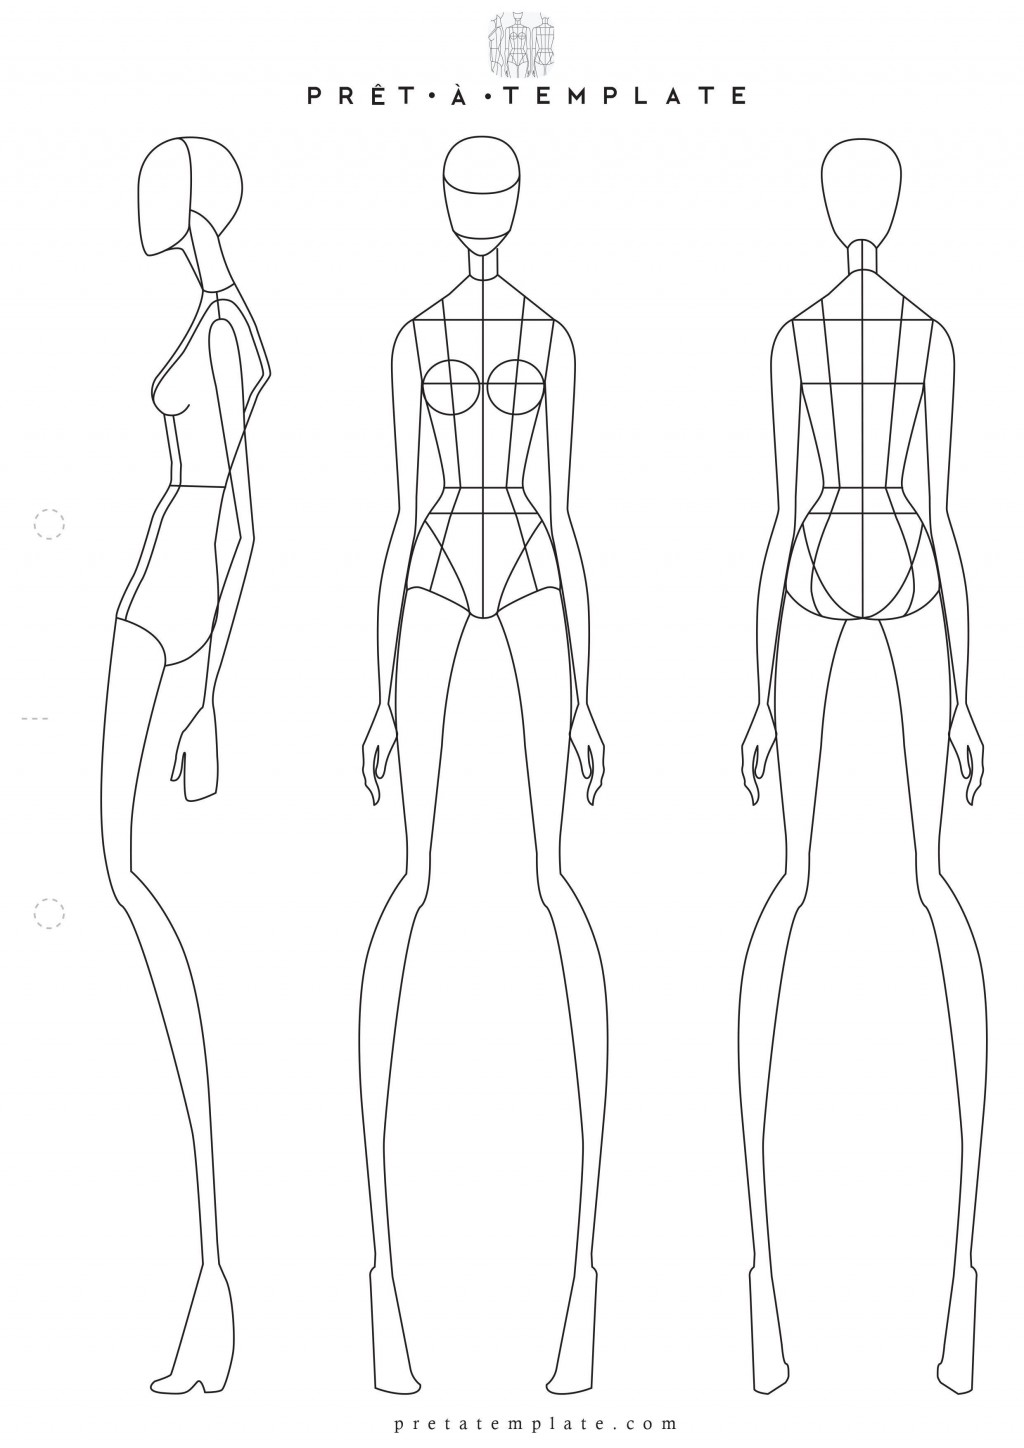 006 Phenomenal Body Template For Fashion Design High Def  Female Male HumanLarge